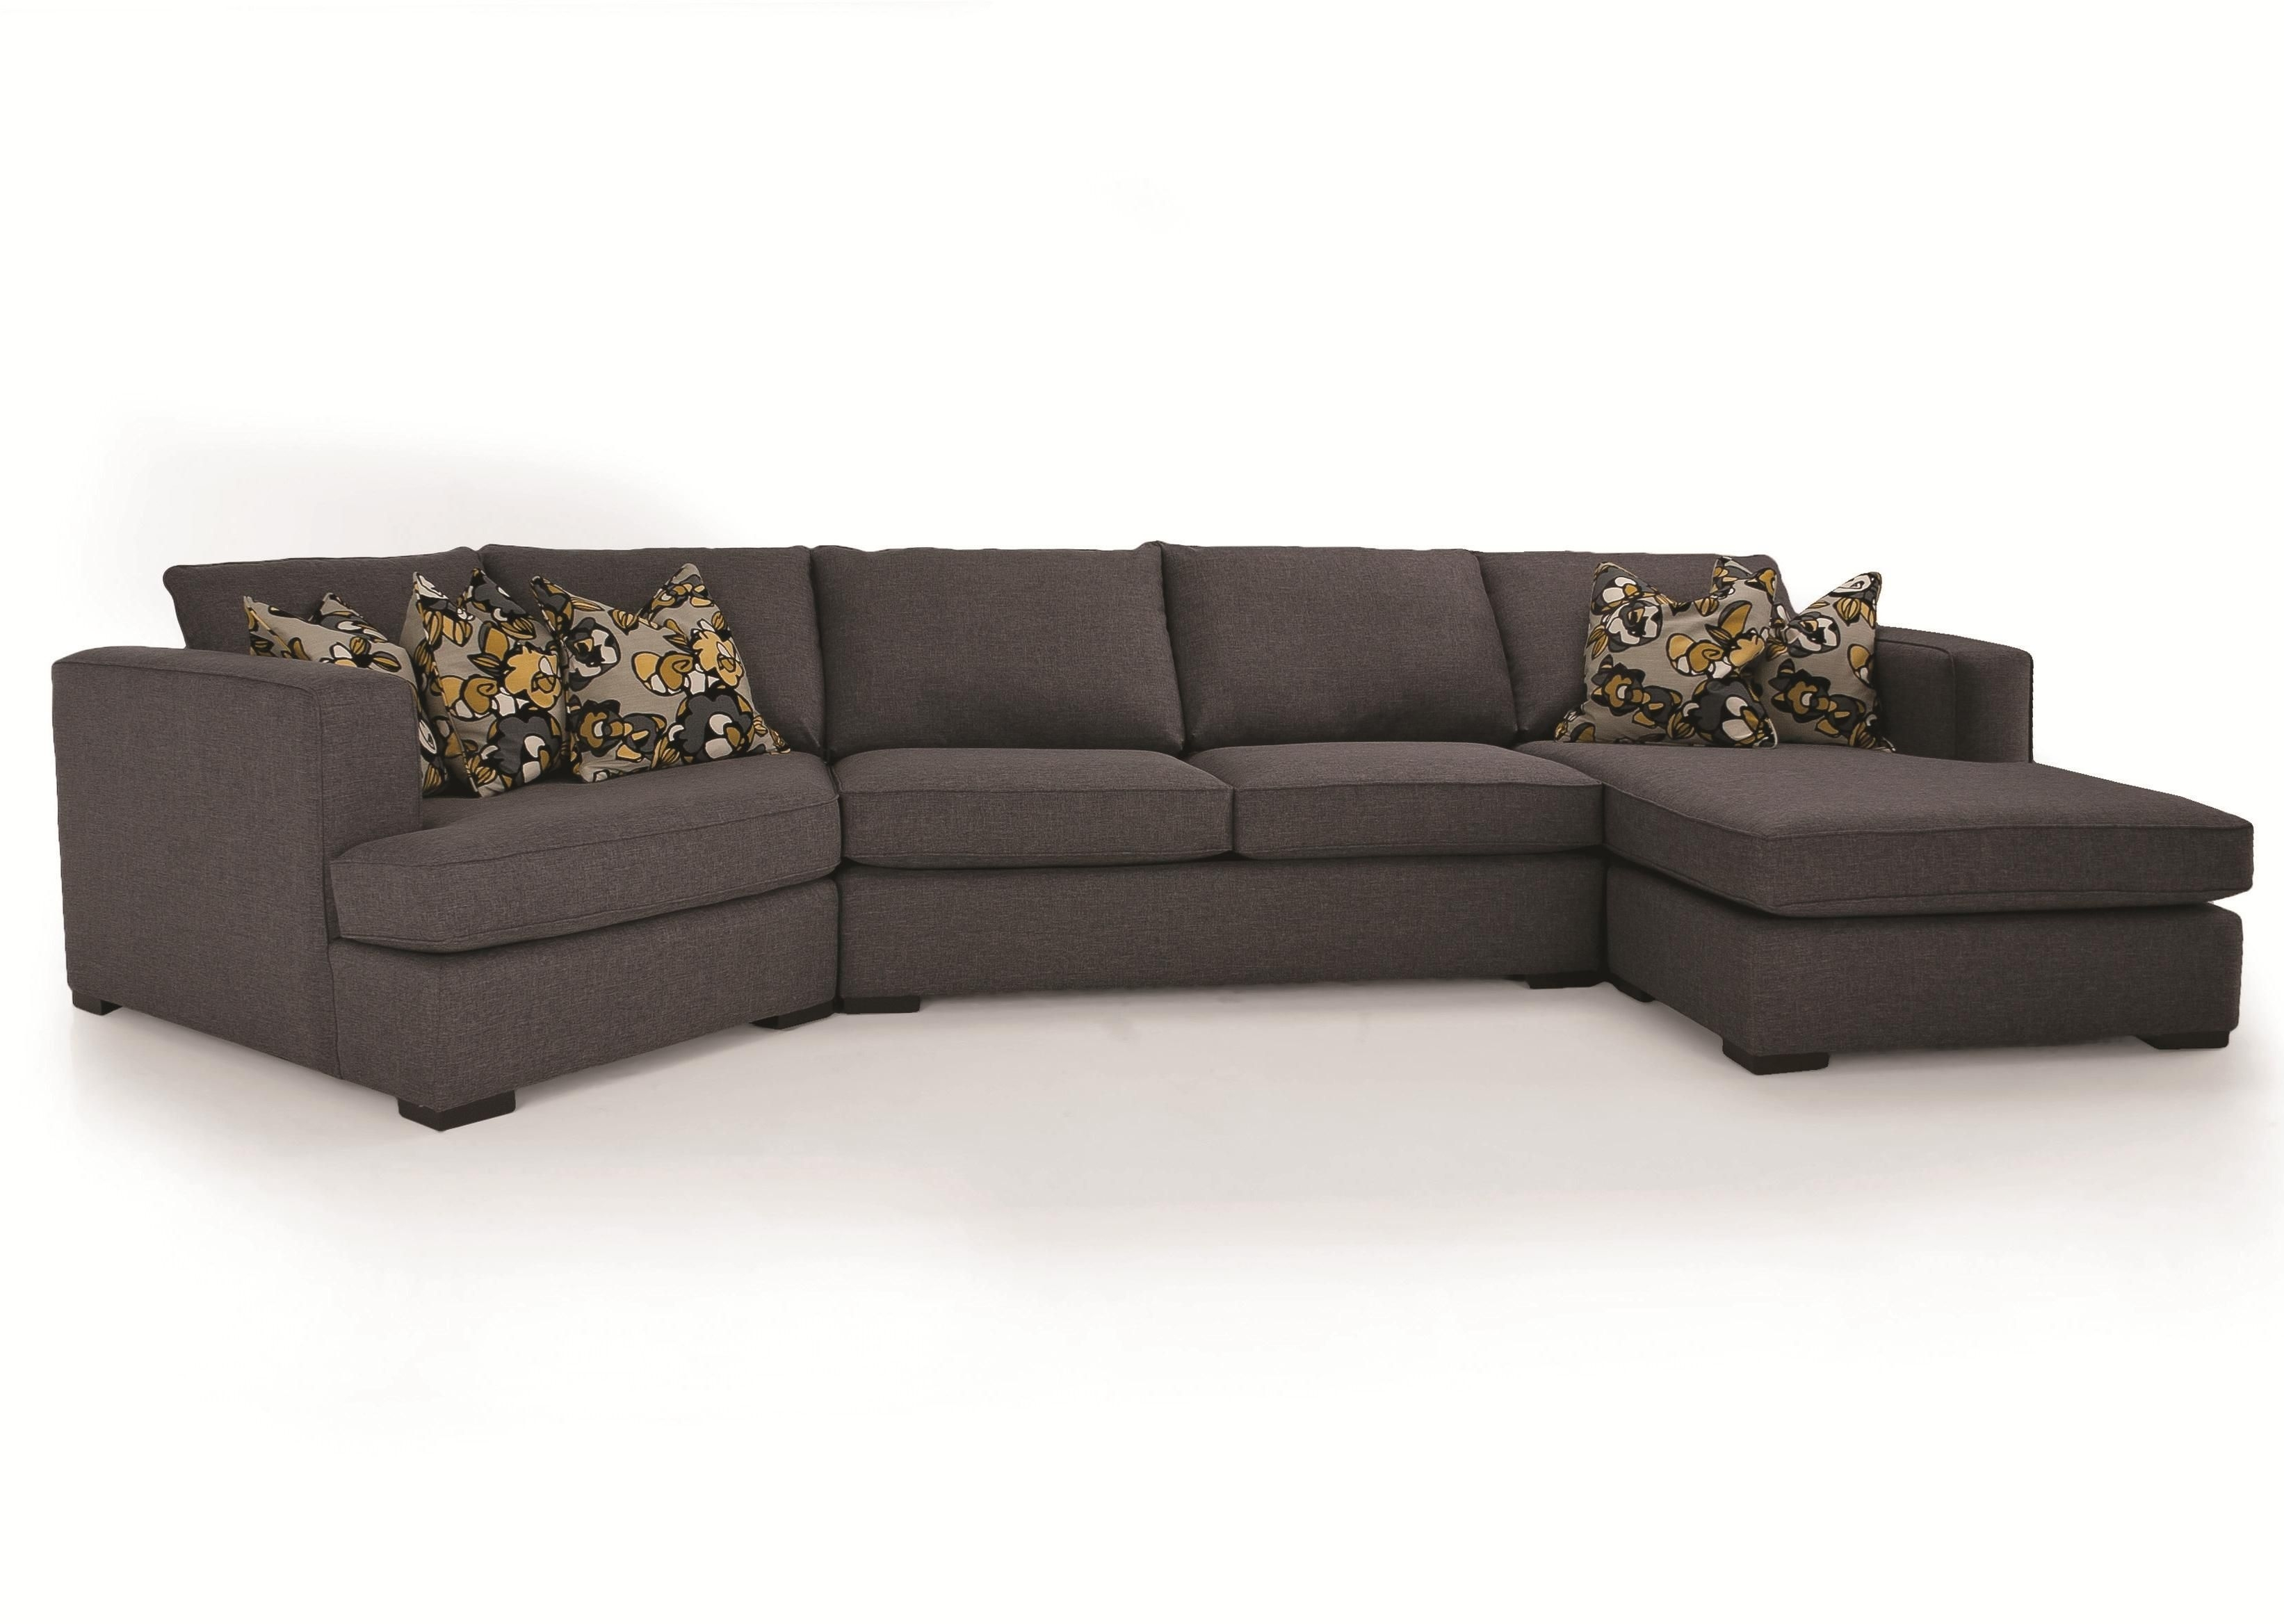 Decor Rest 2900 3 Piece Contemporary Sectional With Lhf Cuddler At Intended For Blaine 3 Piece Sectionals (View 20 of 25)